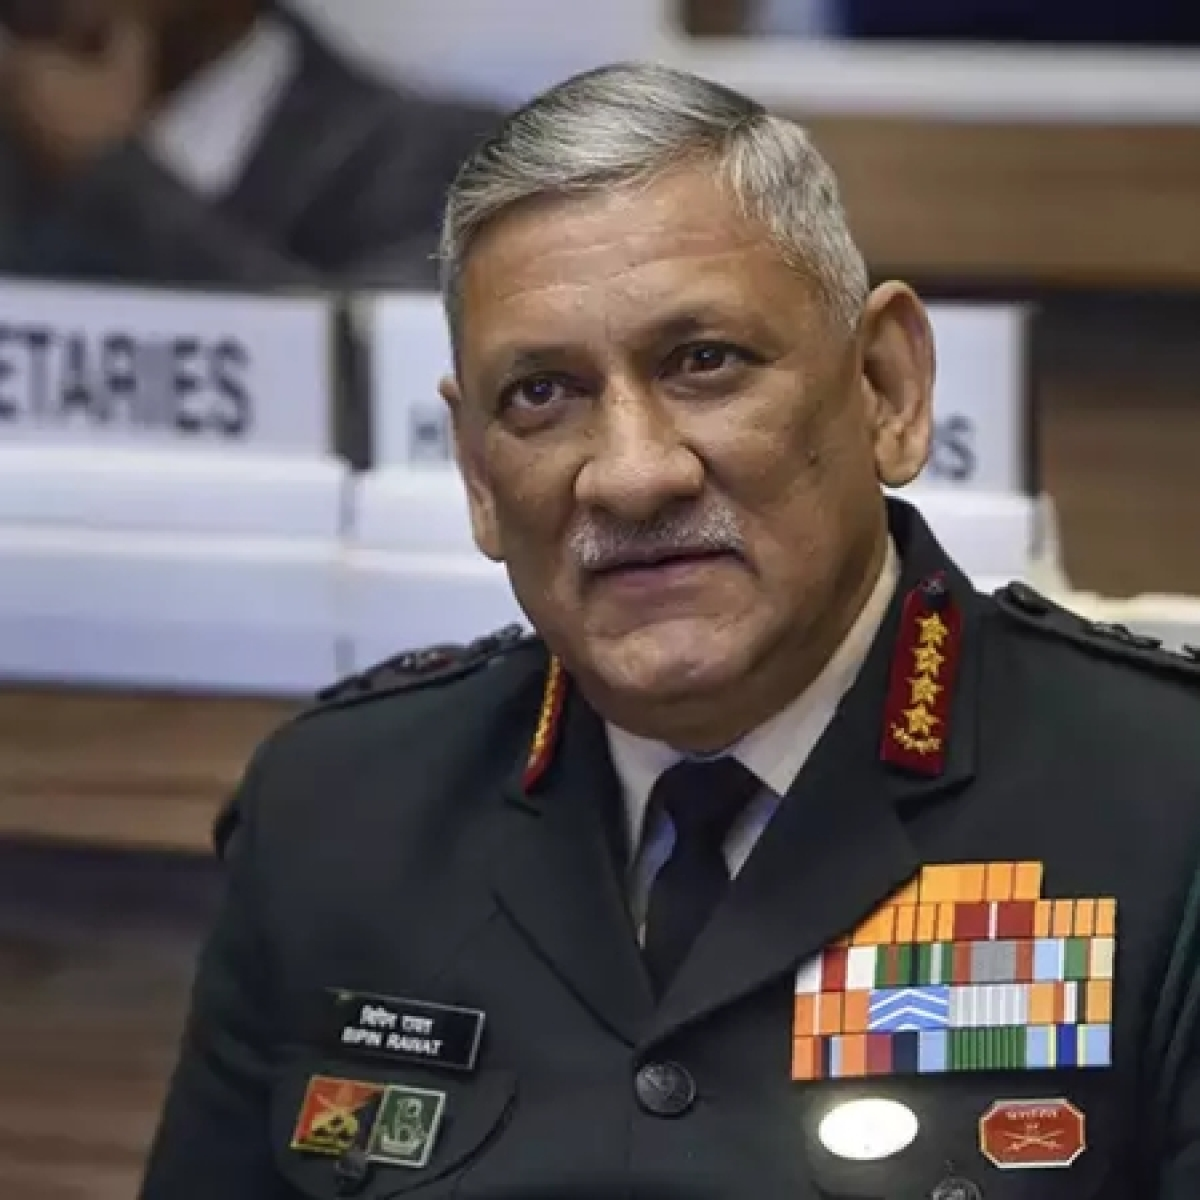 Armed forces, GOI committed to 'Make In India' intiative: CDS Bipin Rawat